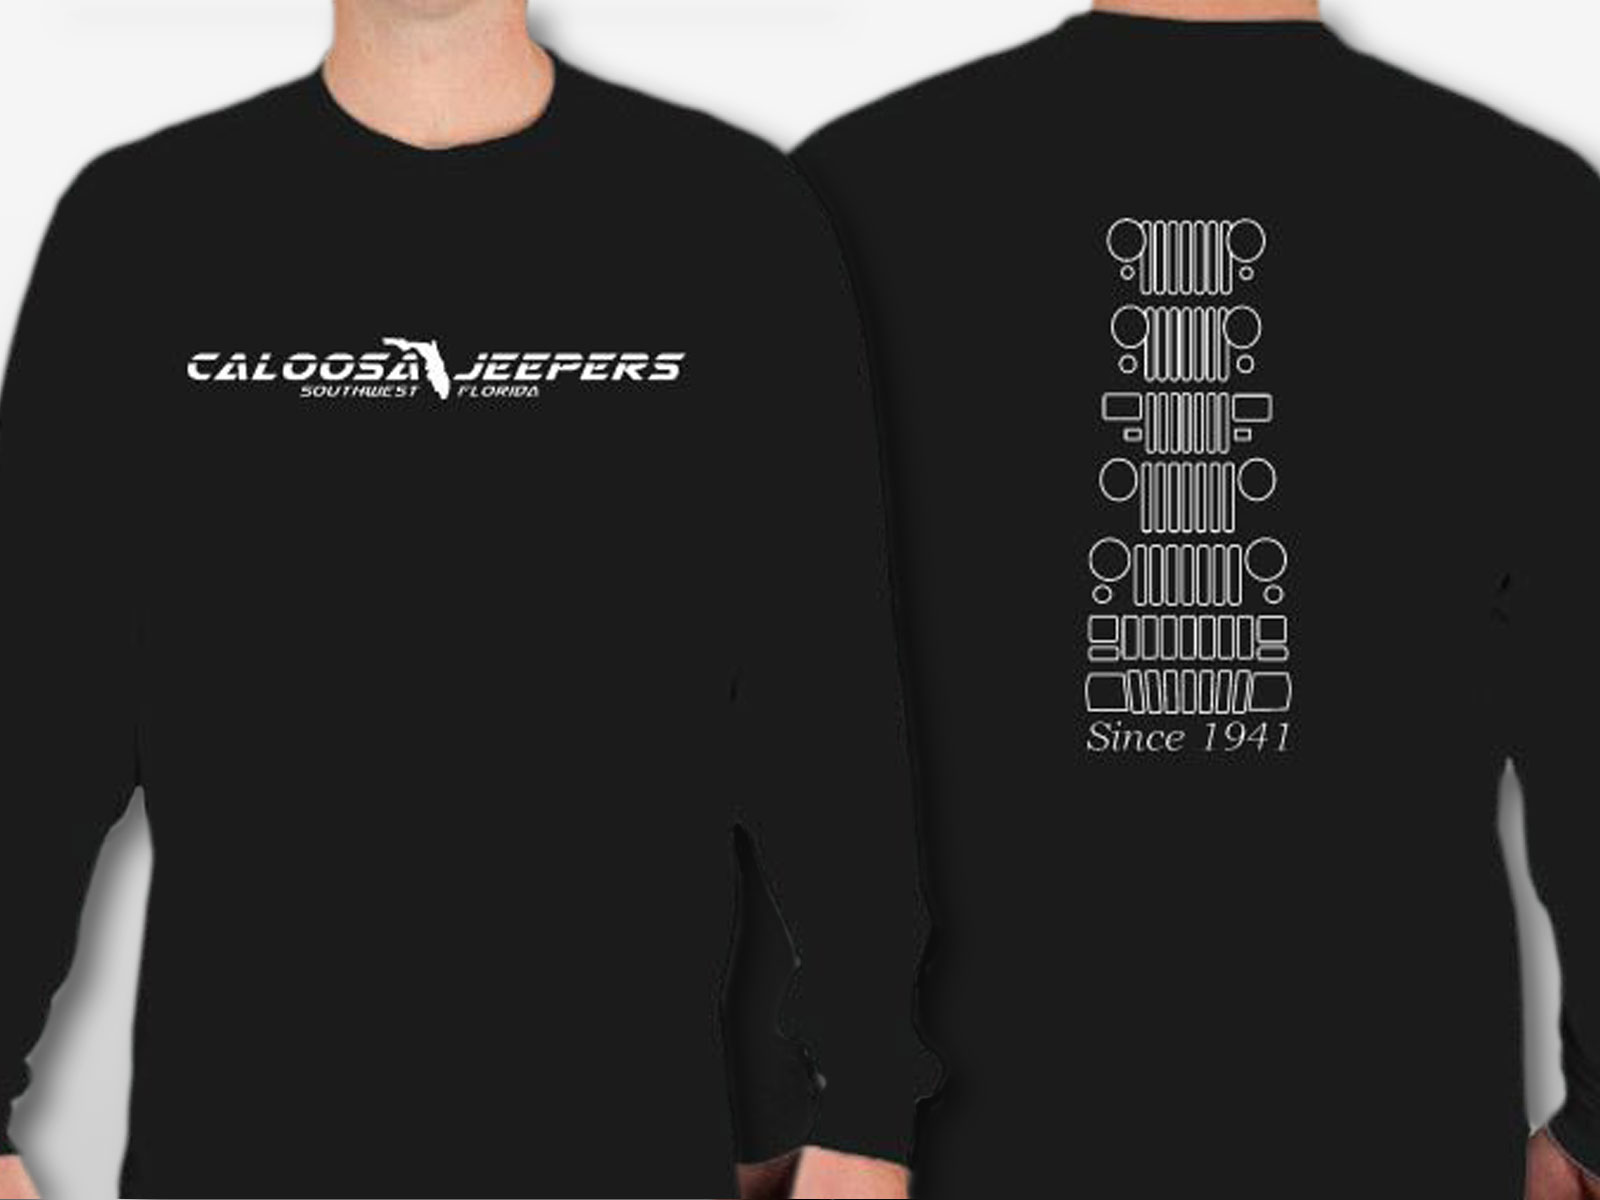 Caloosa Jeepers Grills Tshirt Long Sleeves